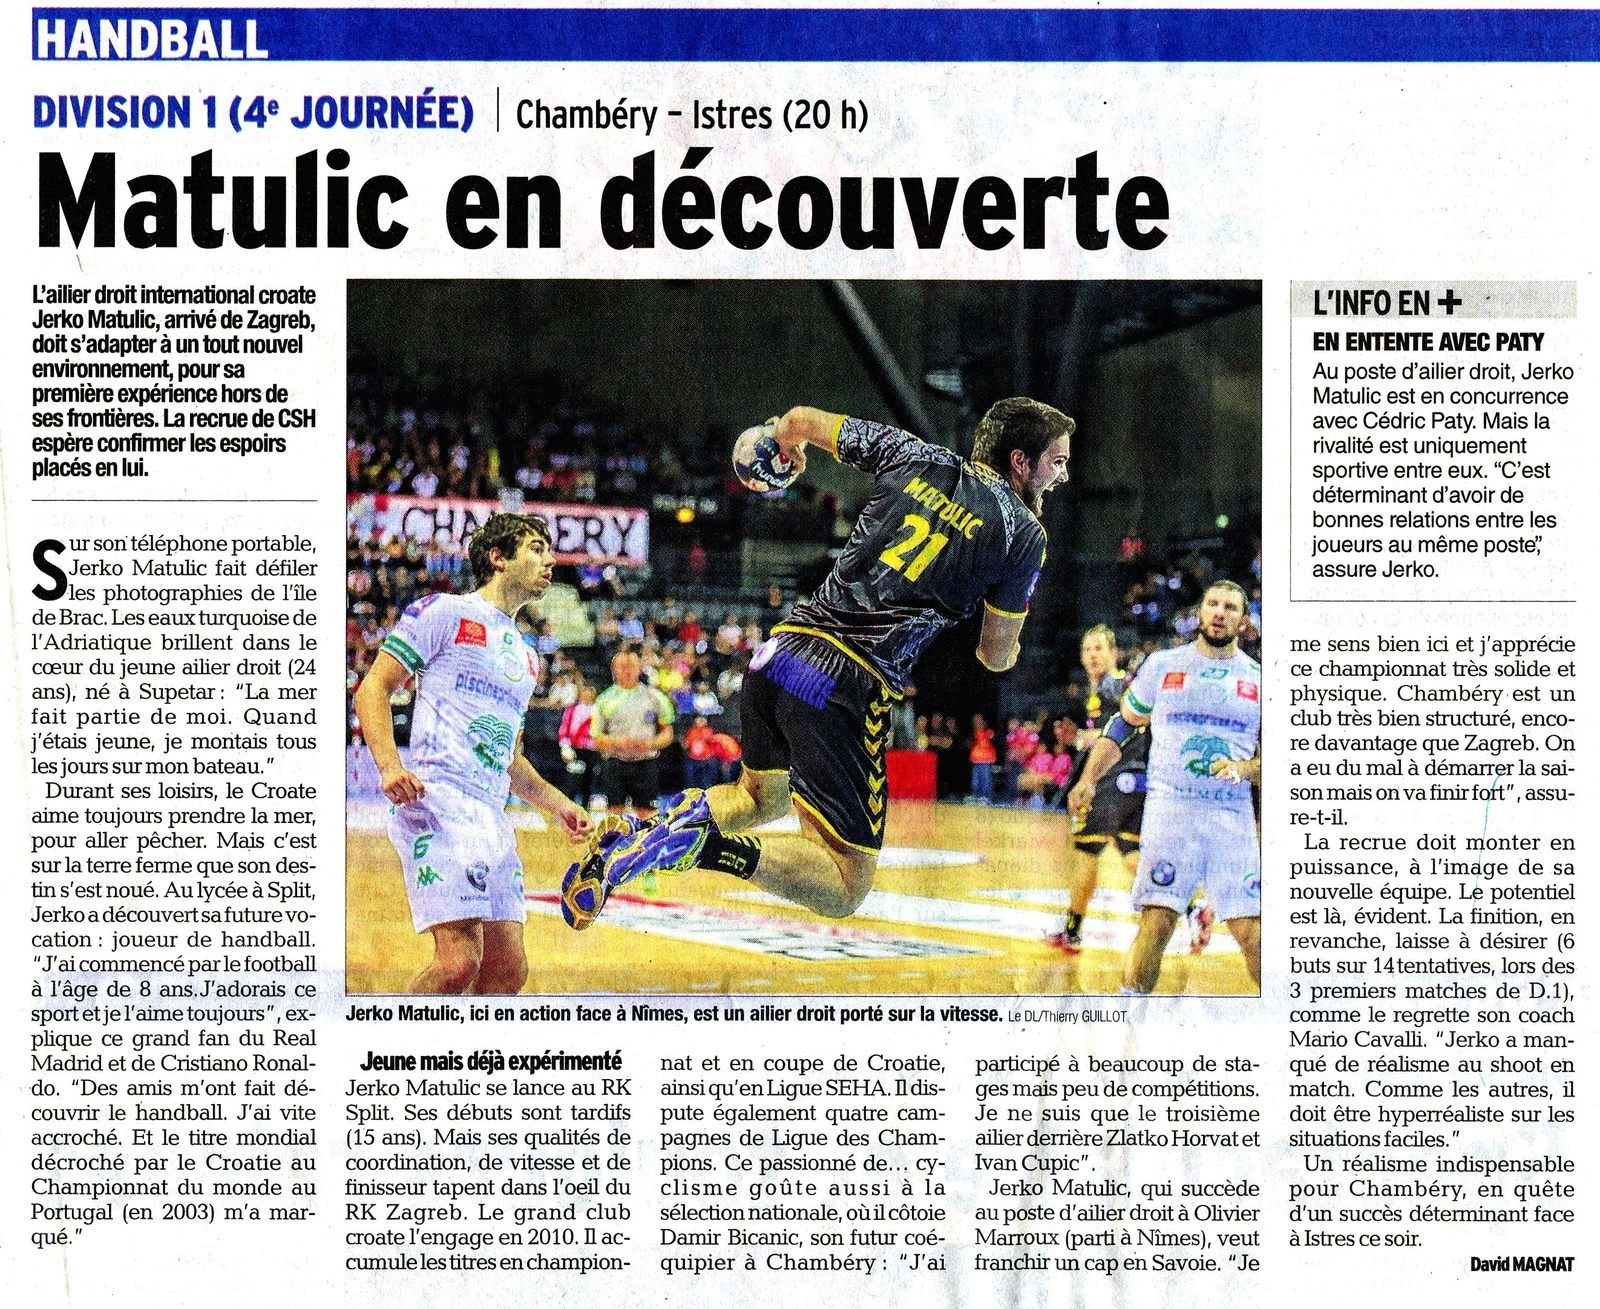 DL article D1 CHAMBERY - ISTRES avant match 01 10 2014